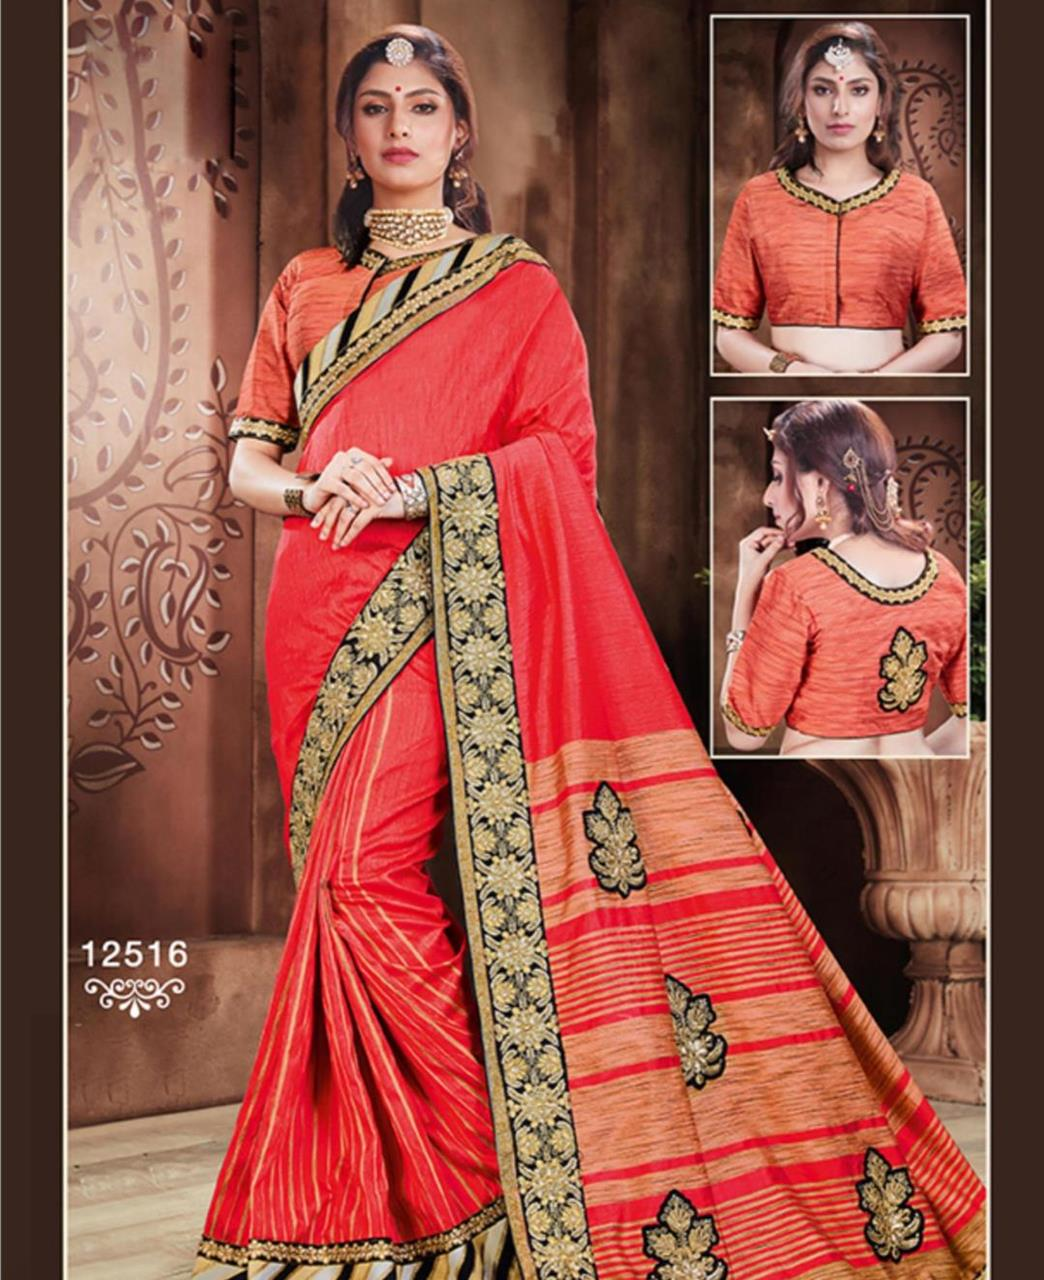 Embroidered Silk Saree (Sari) in Red